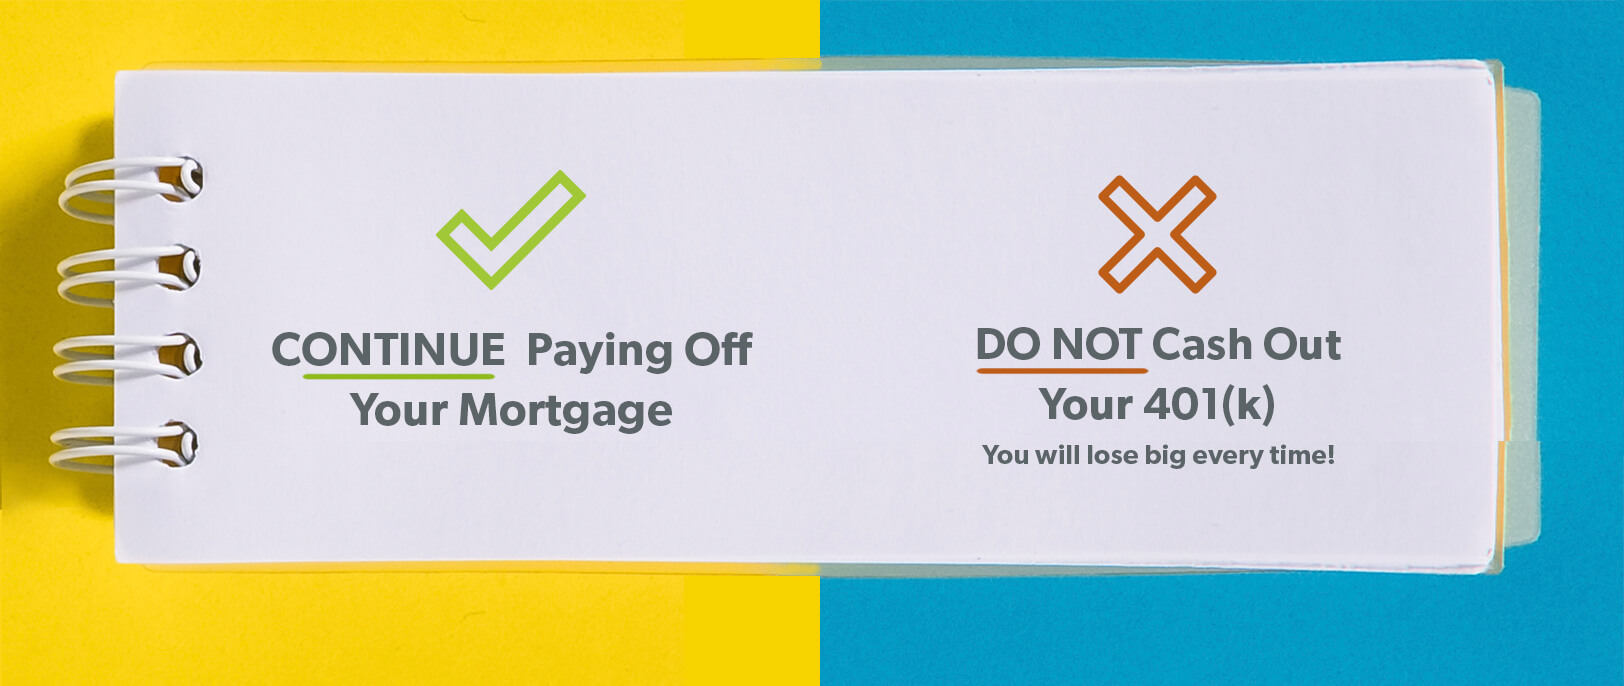 Keep the 401(k) or Pay Off the Mortgage? Continue Paying Off Your Mortgage